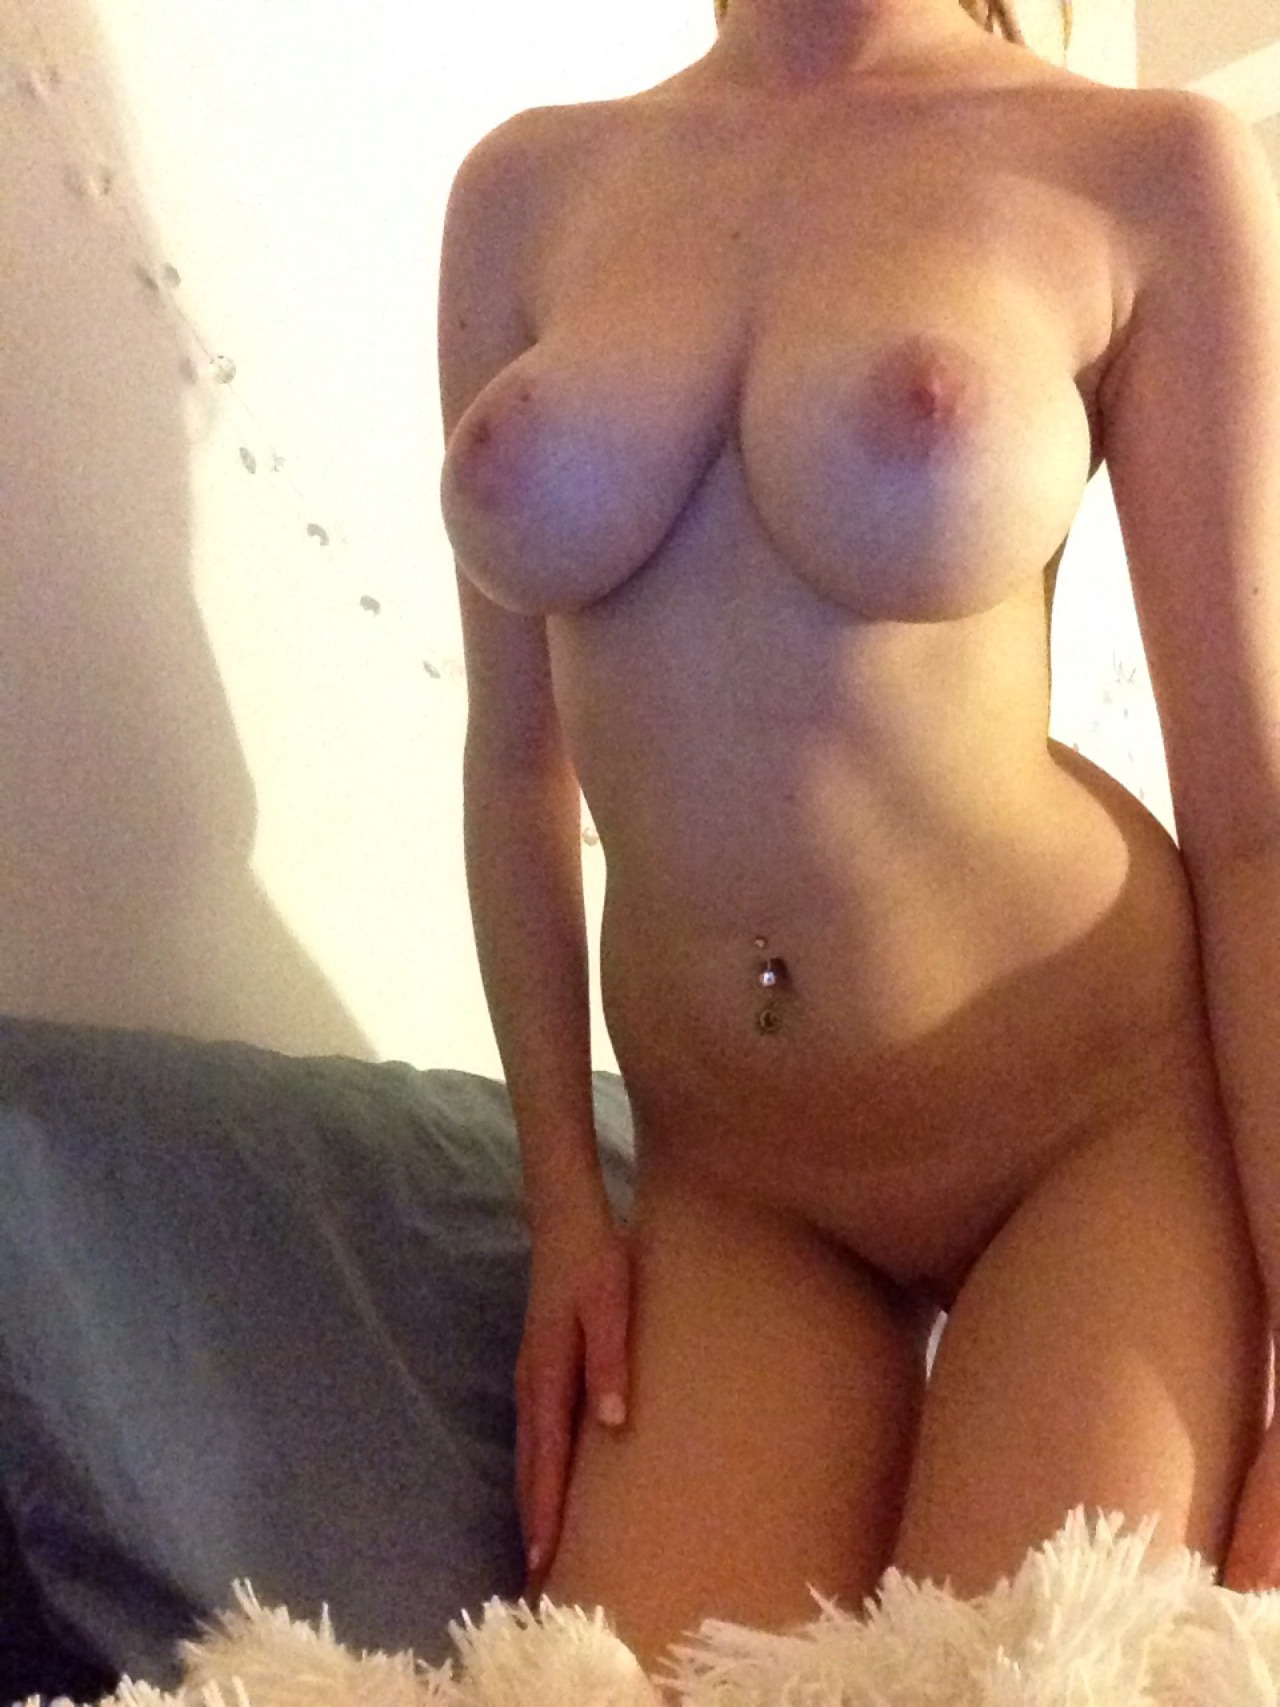 Amateur pon pics  sex video to watch for free